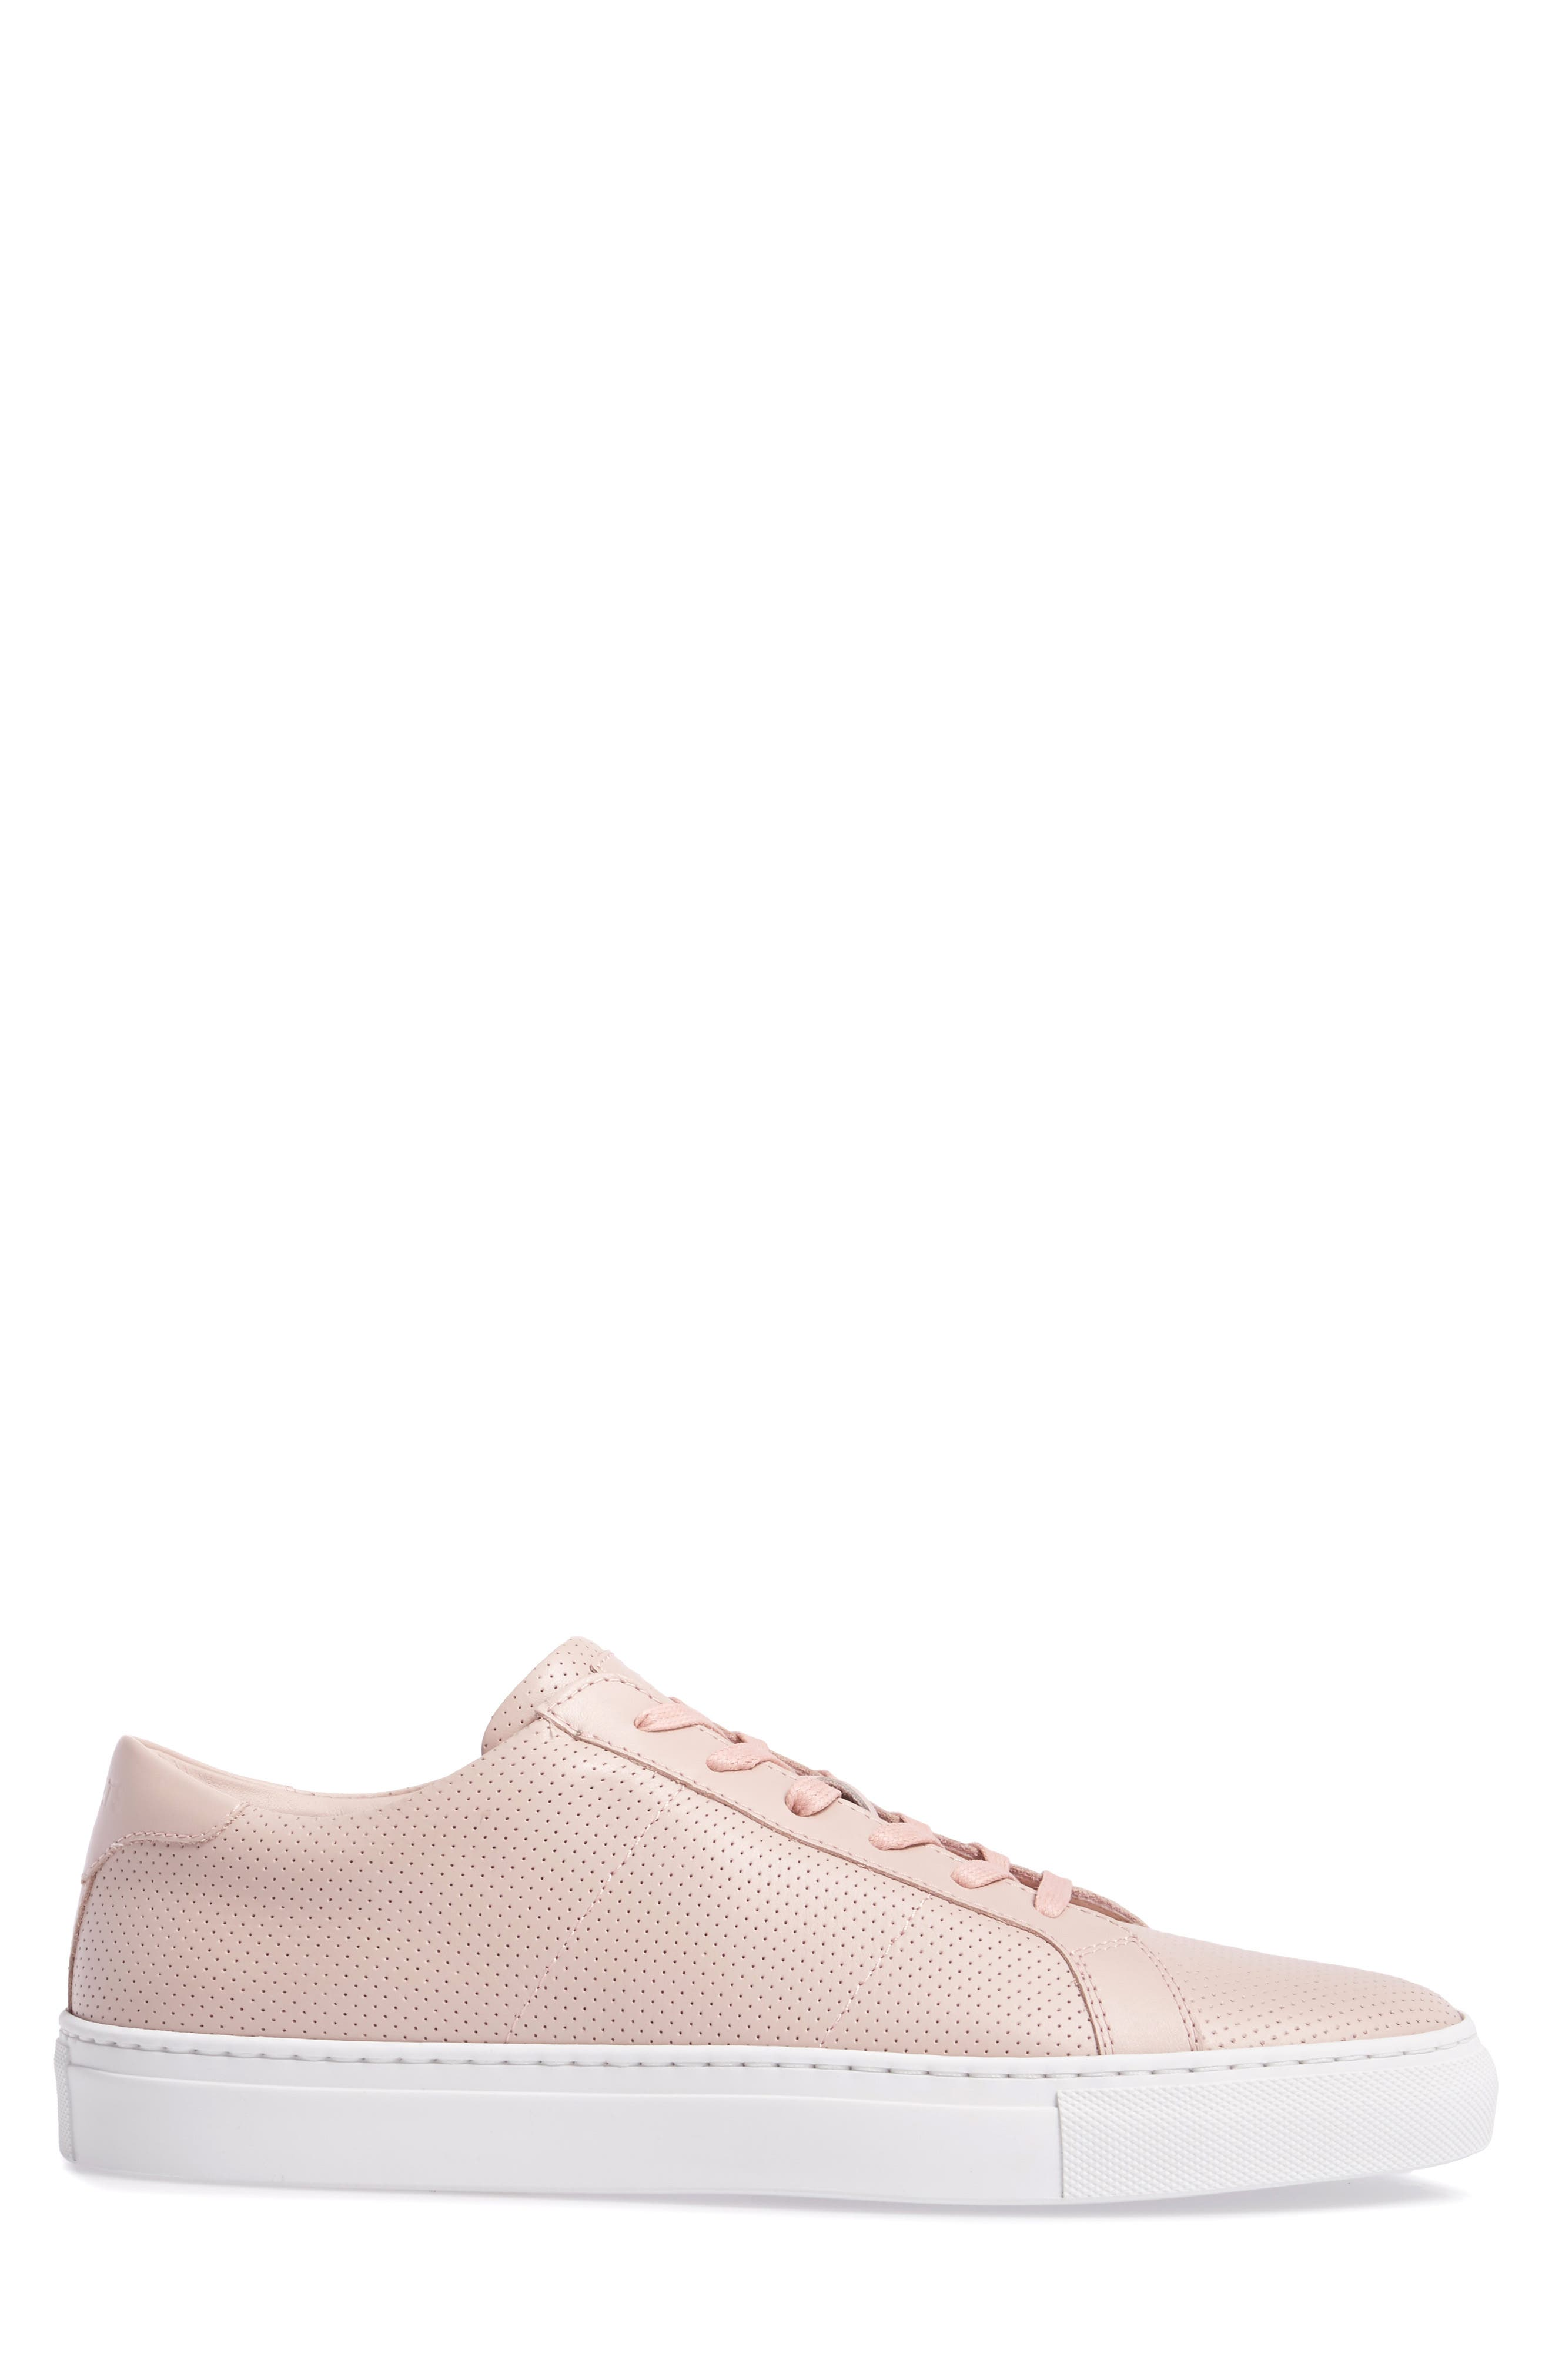 Royale Perforated Low Top Sneaker,                             Alternate thumbnail 3, color,                             BLUSH PERFORATED LEATHER